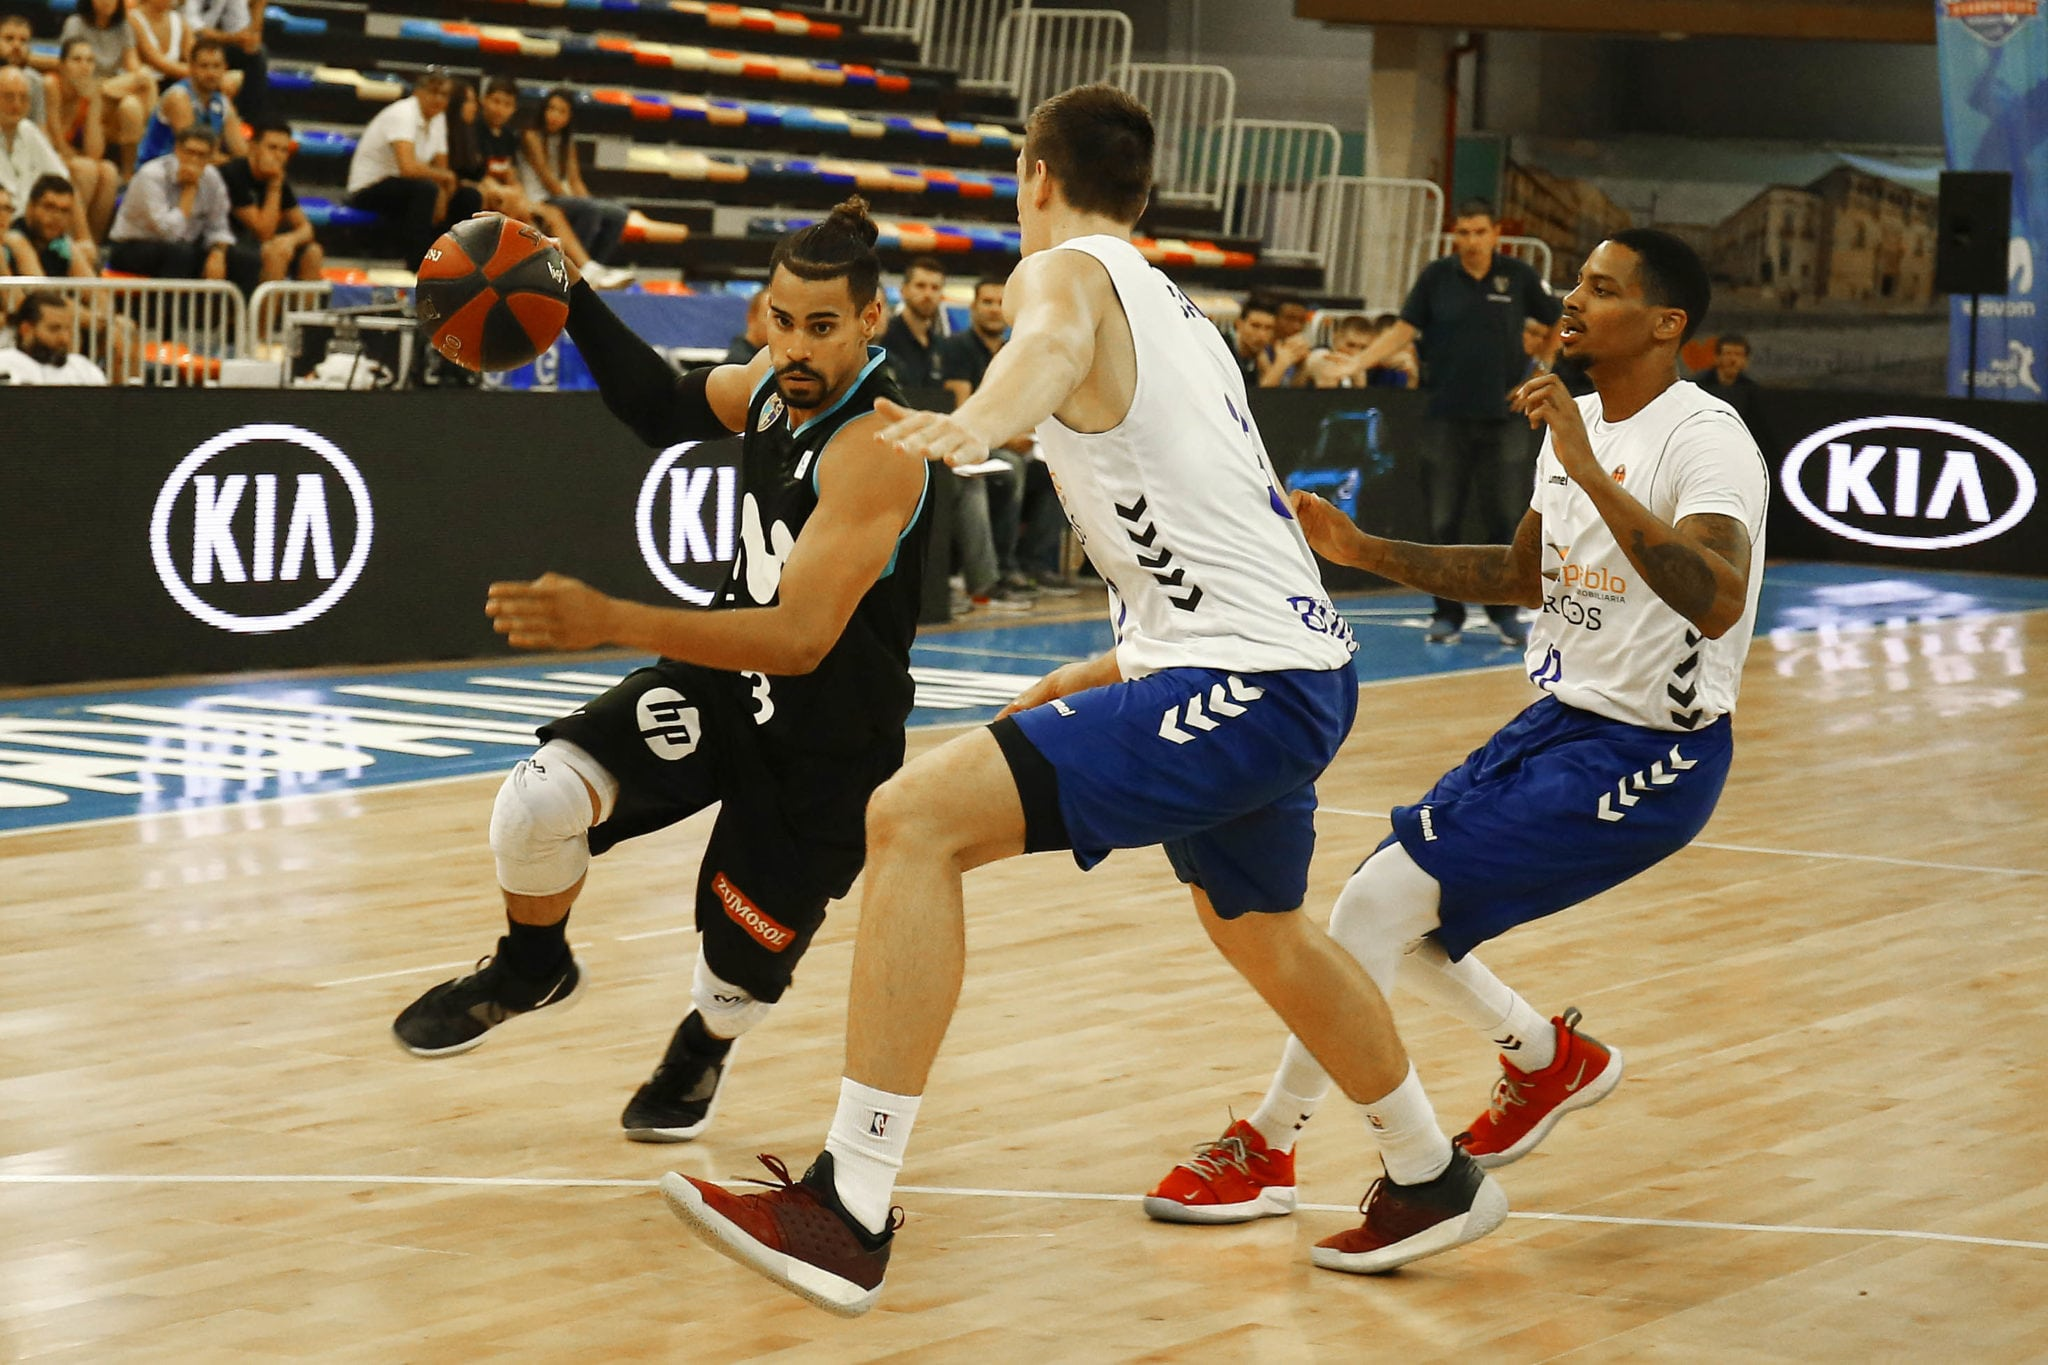 Hablan Berrocal y Clavell